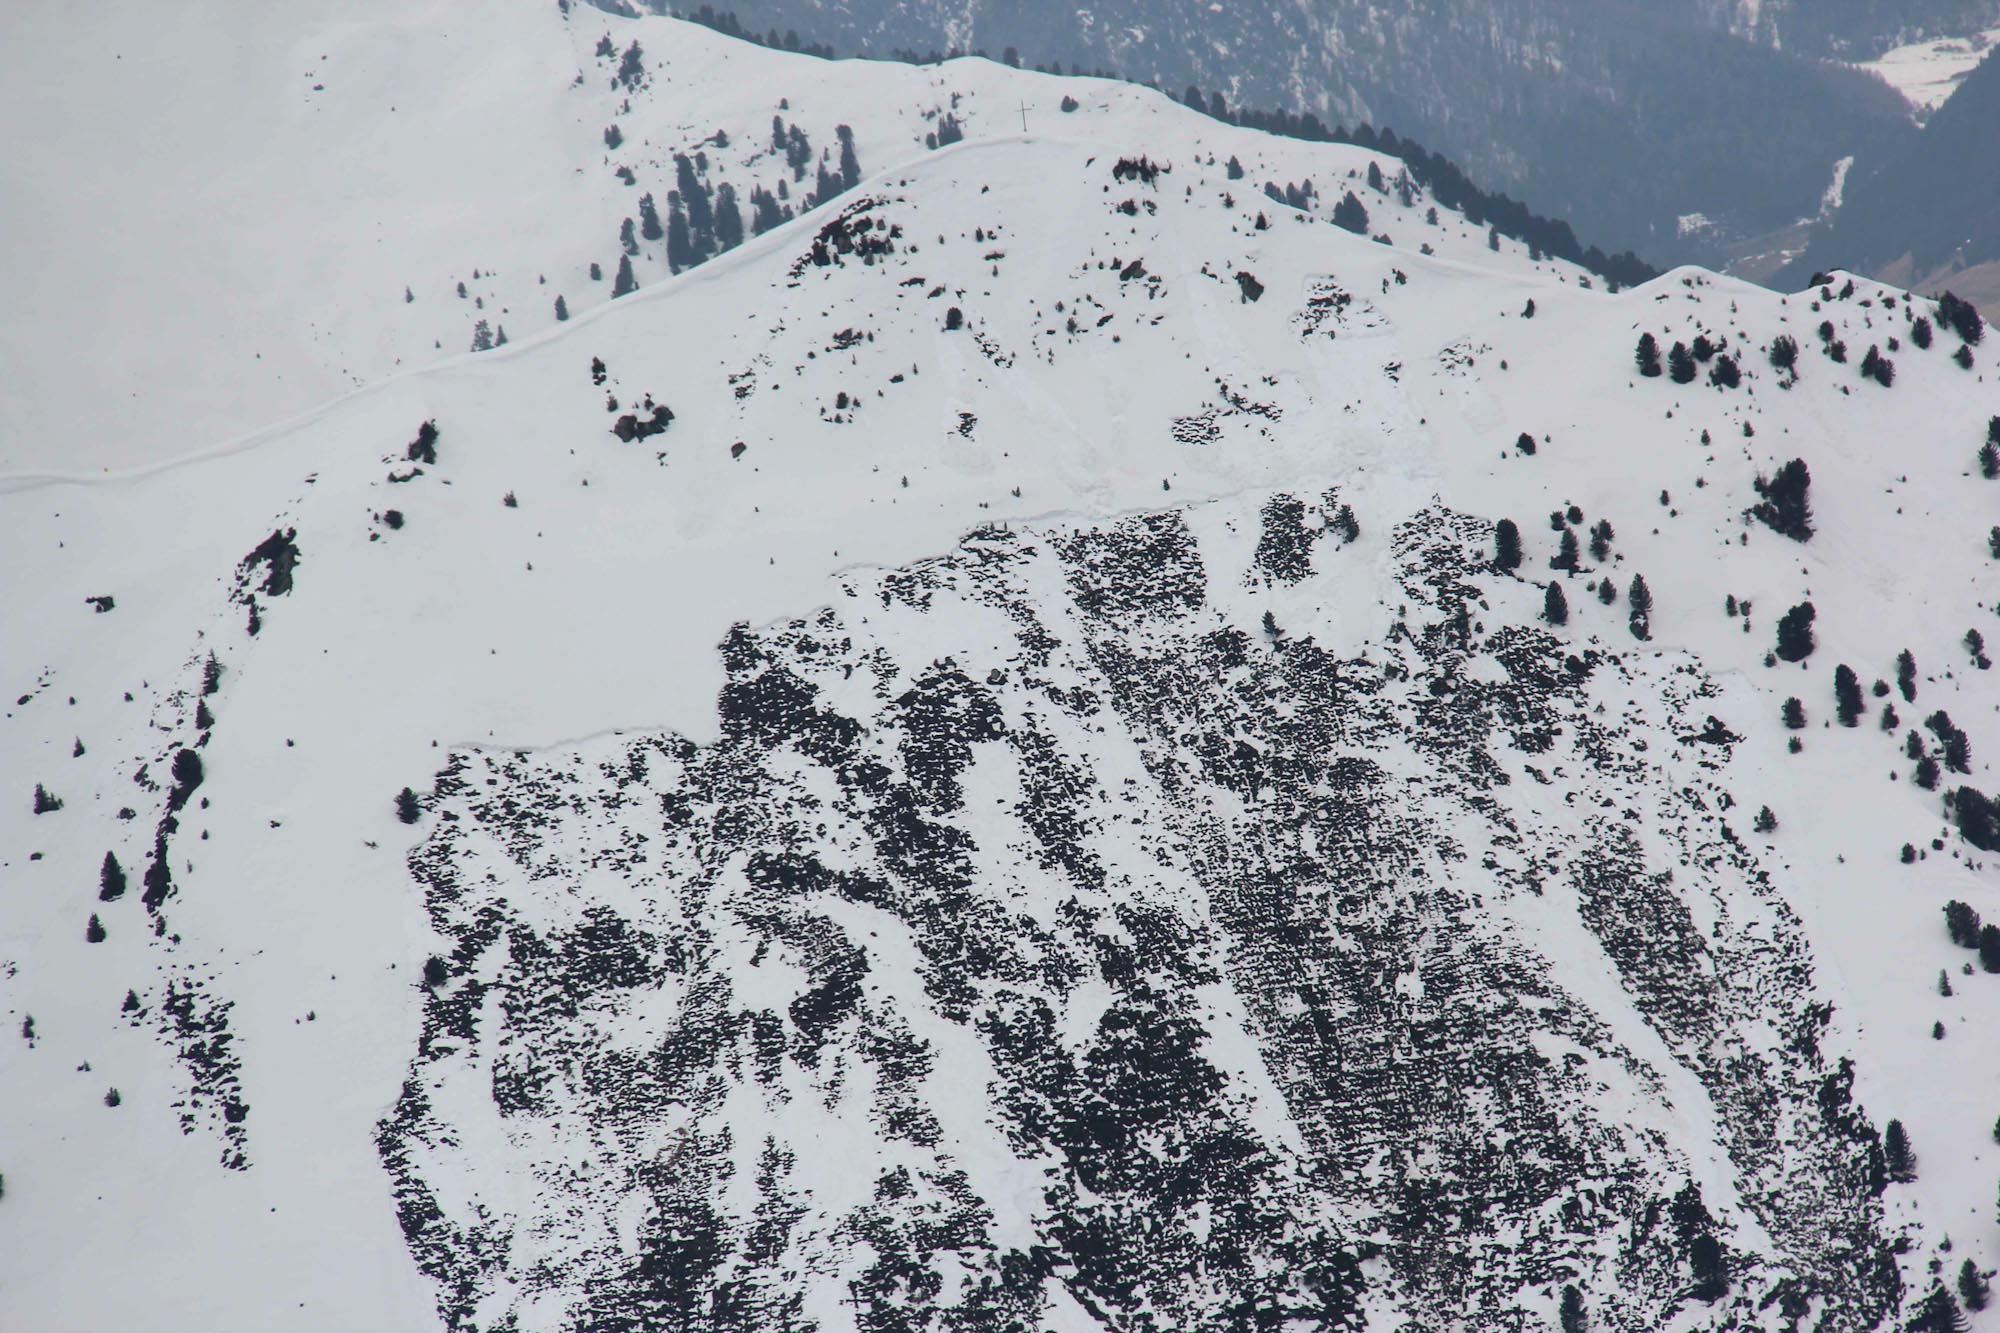 Glossary Full depth slab avalanche © LWD Tirol | EAWS European Avalanche Warning Services